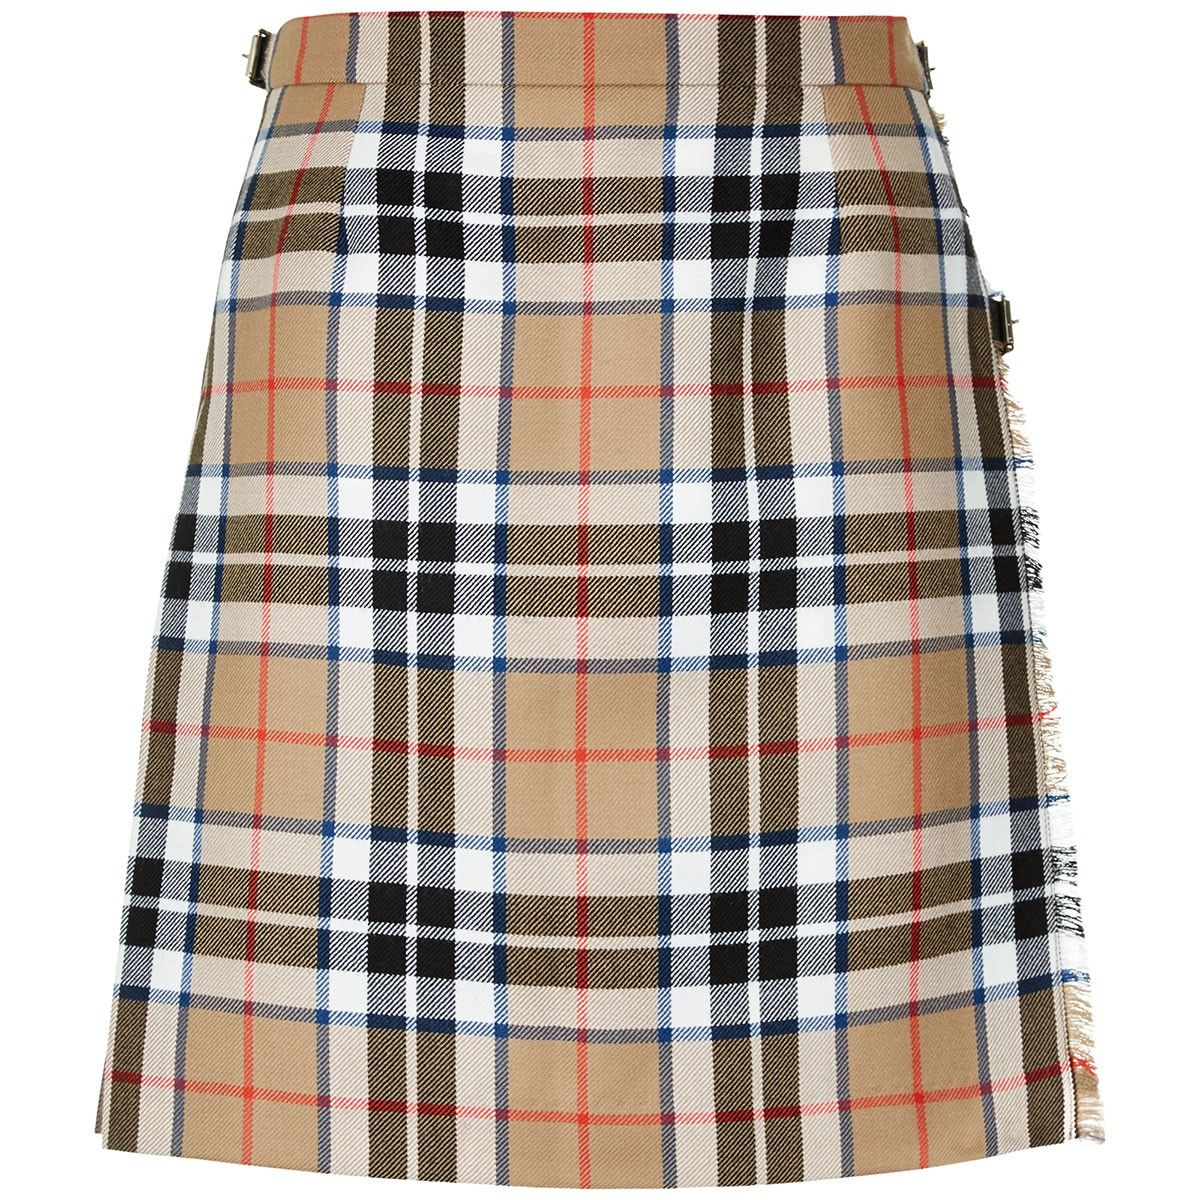 5ec77d01bd06 Mini Kilted Skirt - Burnett's & Struth Scottish Regalia